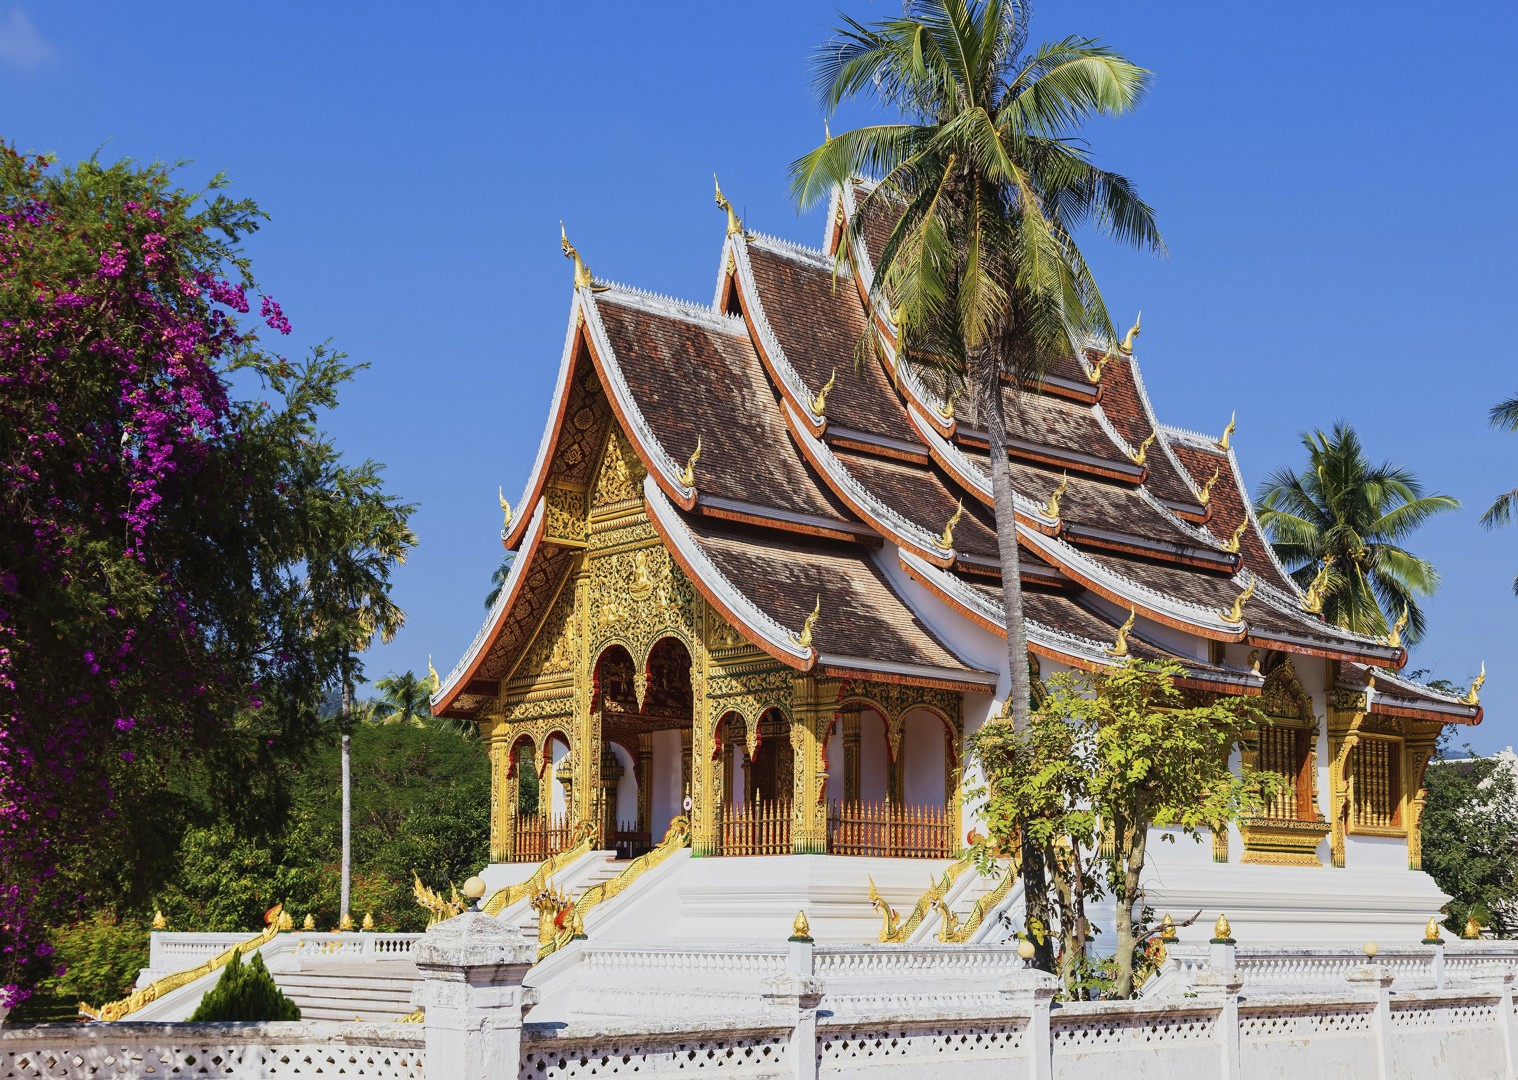 Cycling-holiday-Laos-Prabang Museums.jpg - Laos - Hidden Treasures - Cycling Adventures